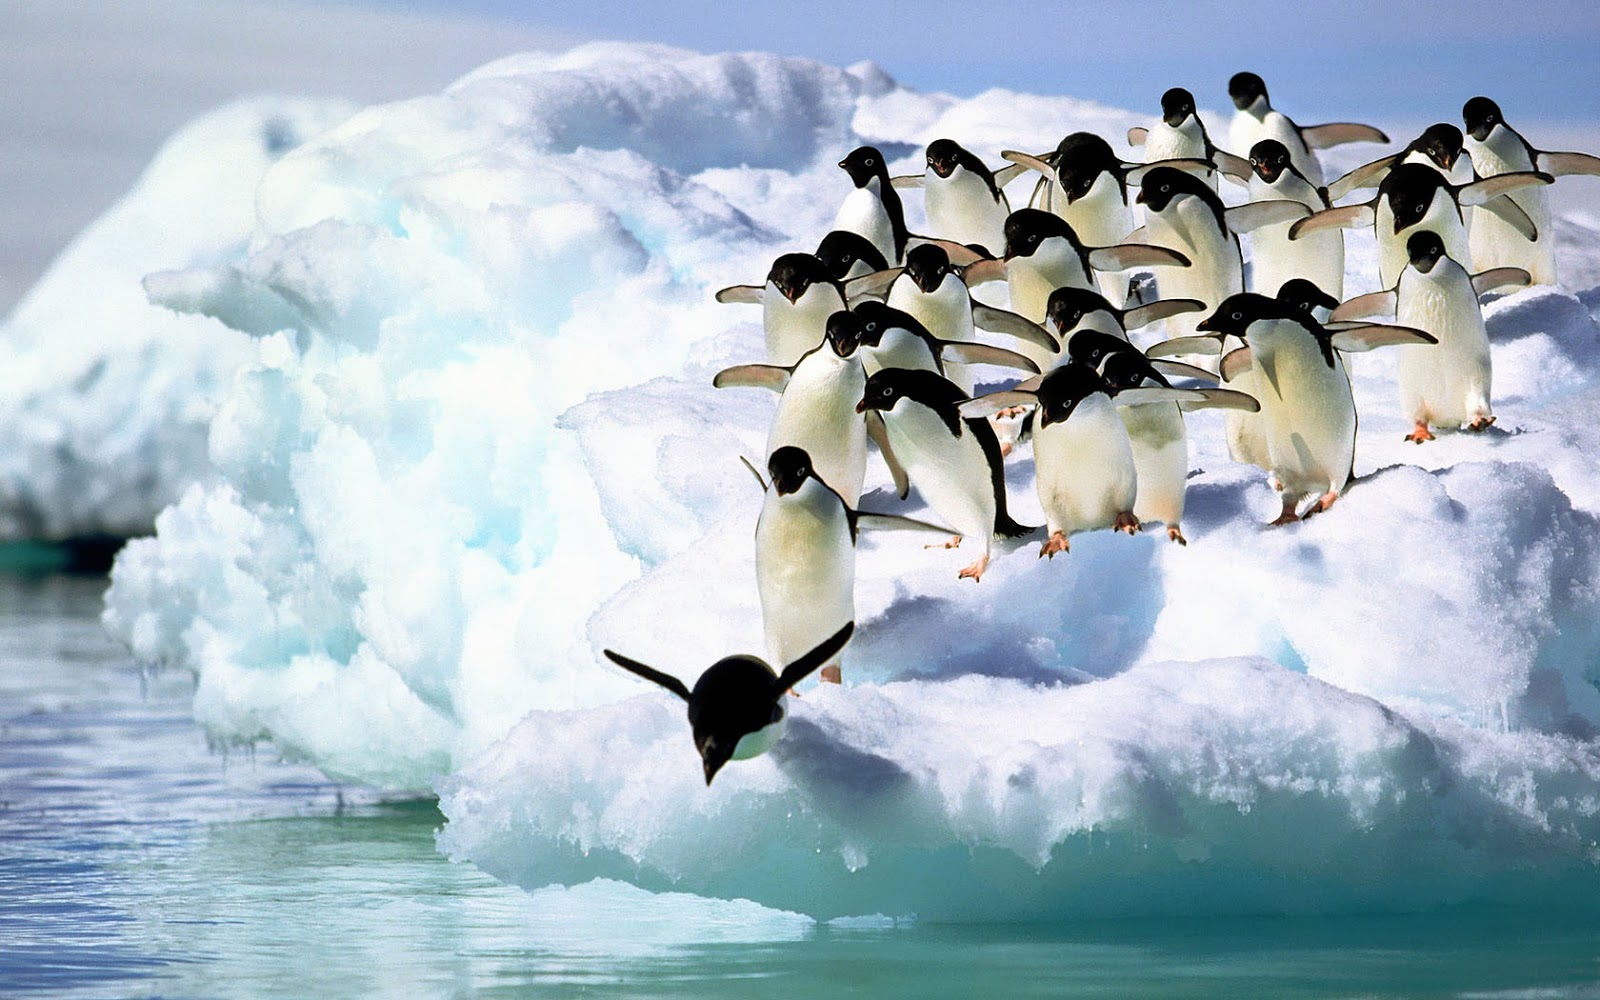 Free Snow Falling Live Wallpaper Hd Penguins Wallpapers And Photos Hd Animals Wallpapers